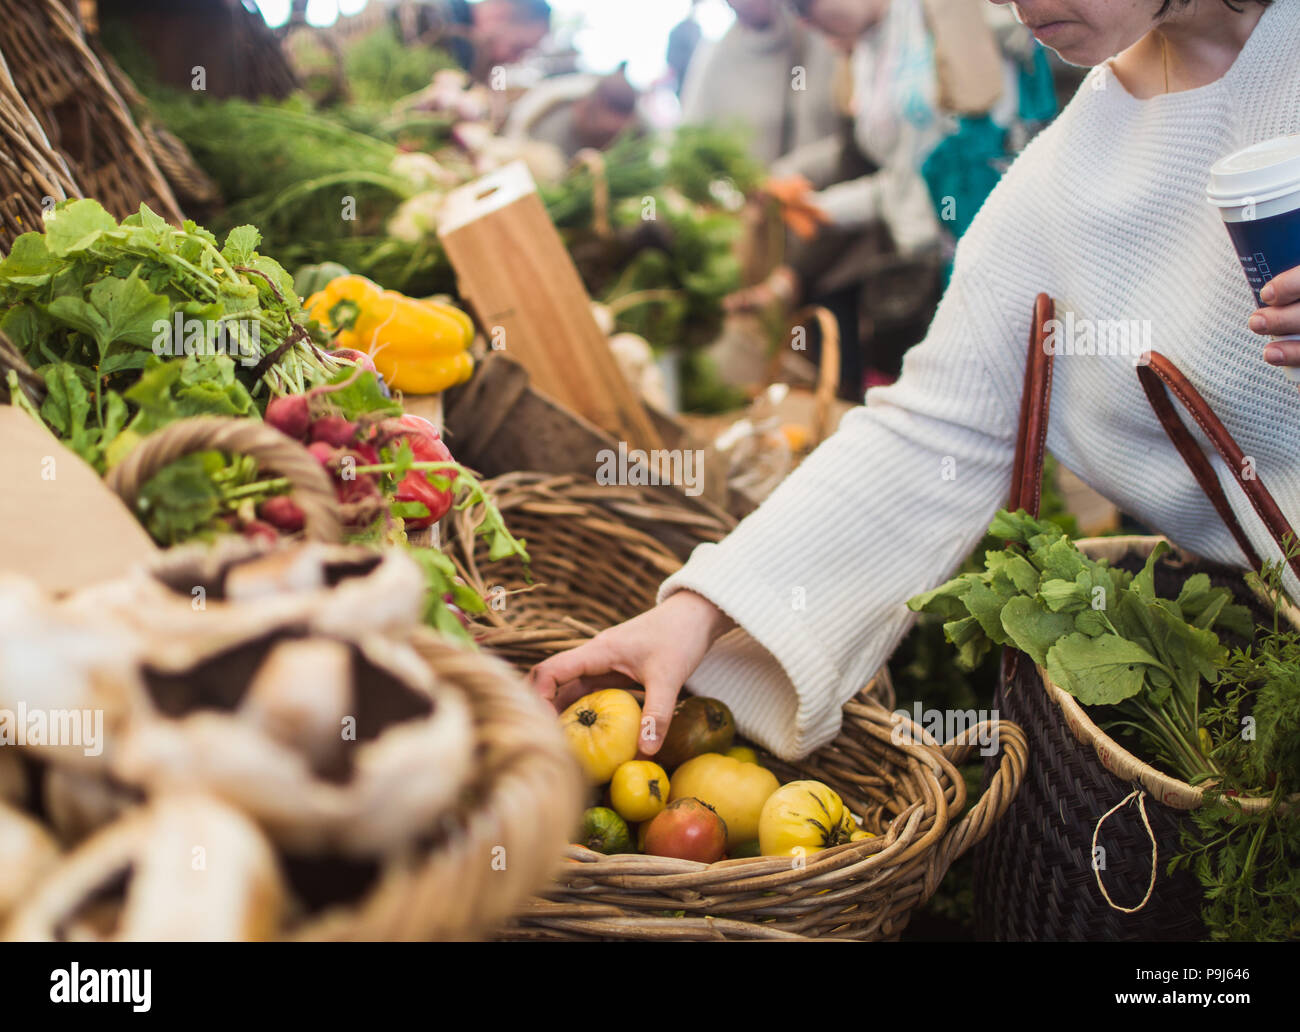 Woman with farmers market Photo Stock